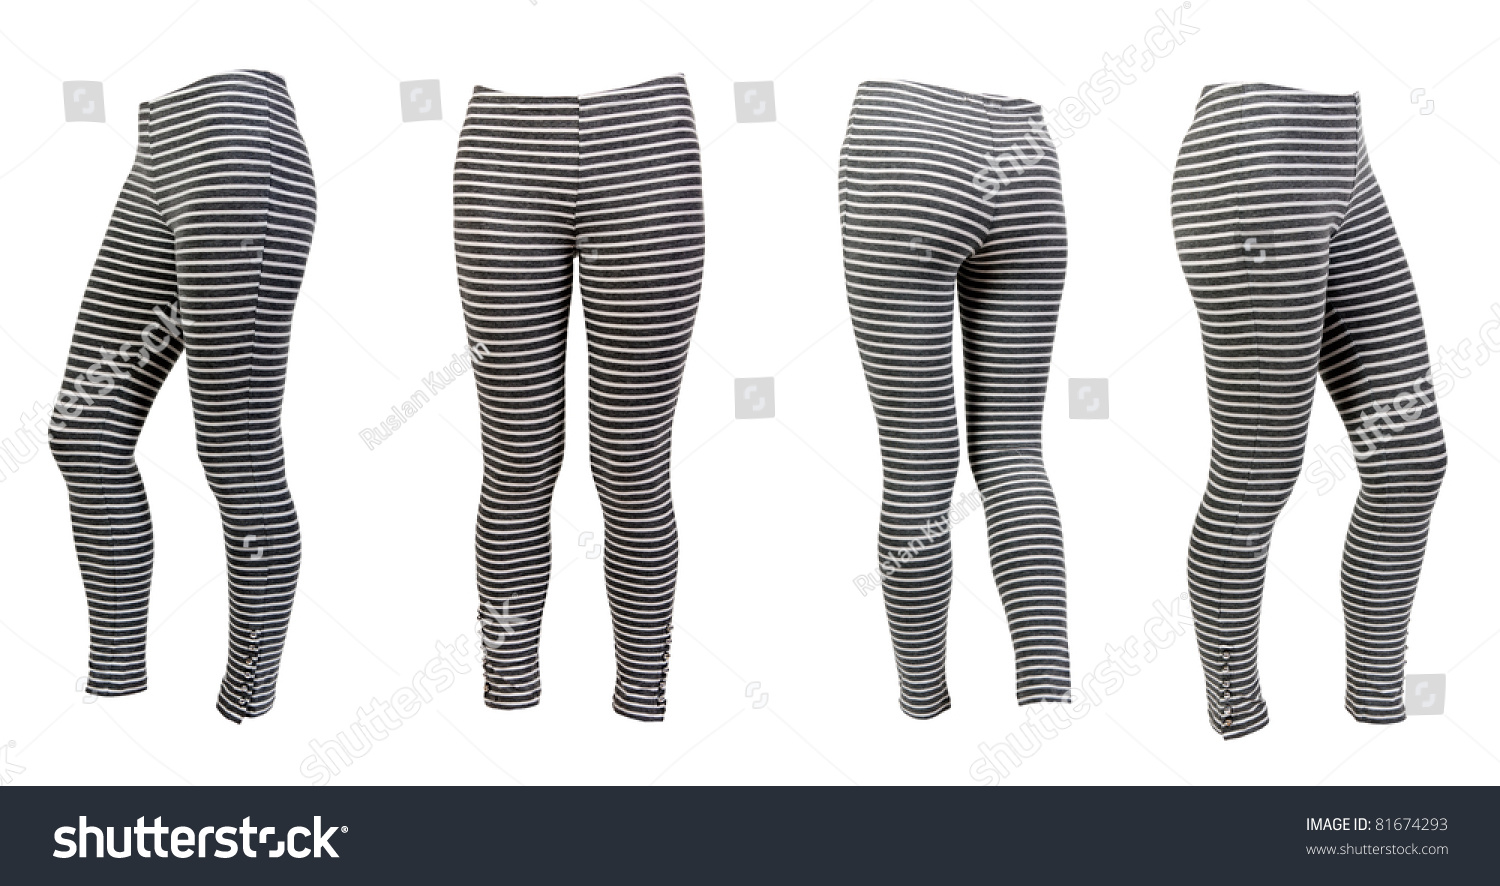 6f635e720fbb4 four gray striped leggings collage isolated on a white background. Image  composed of several photographs